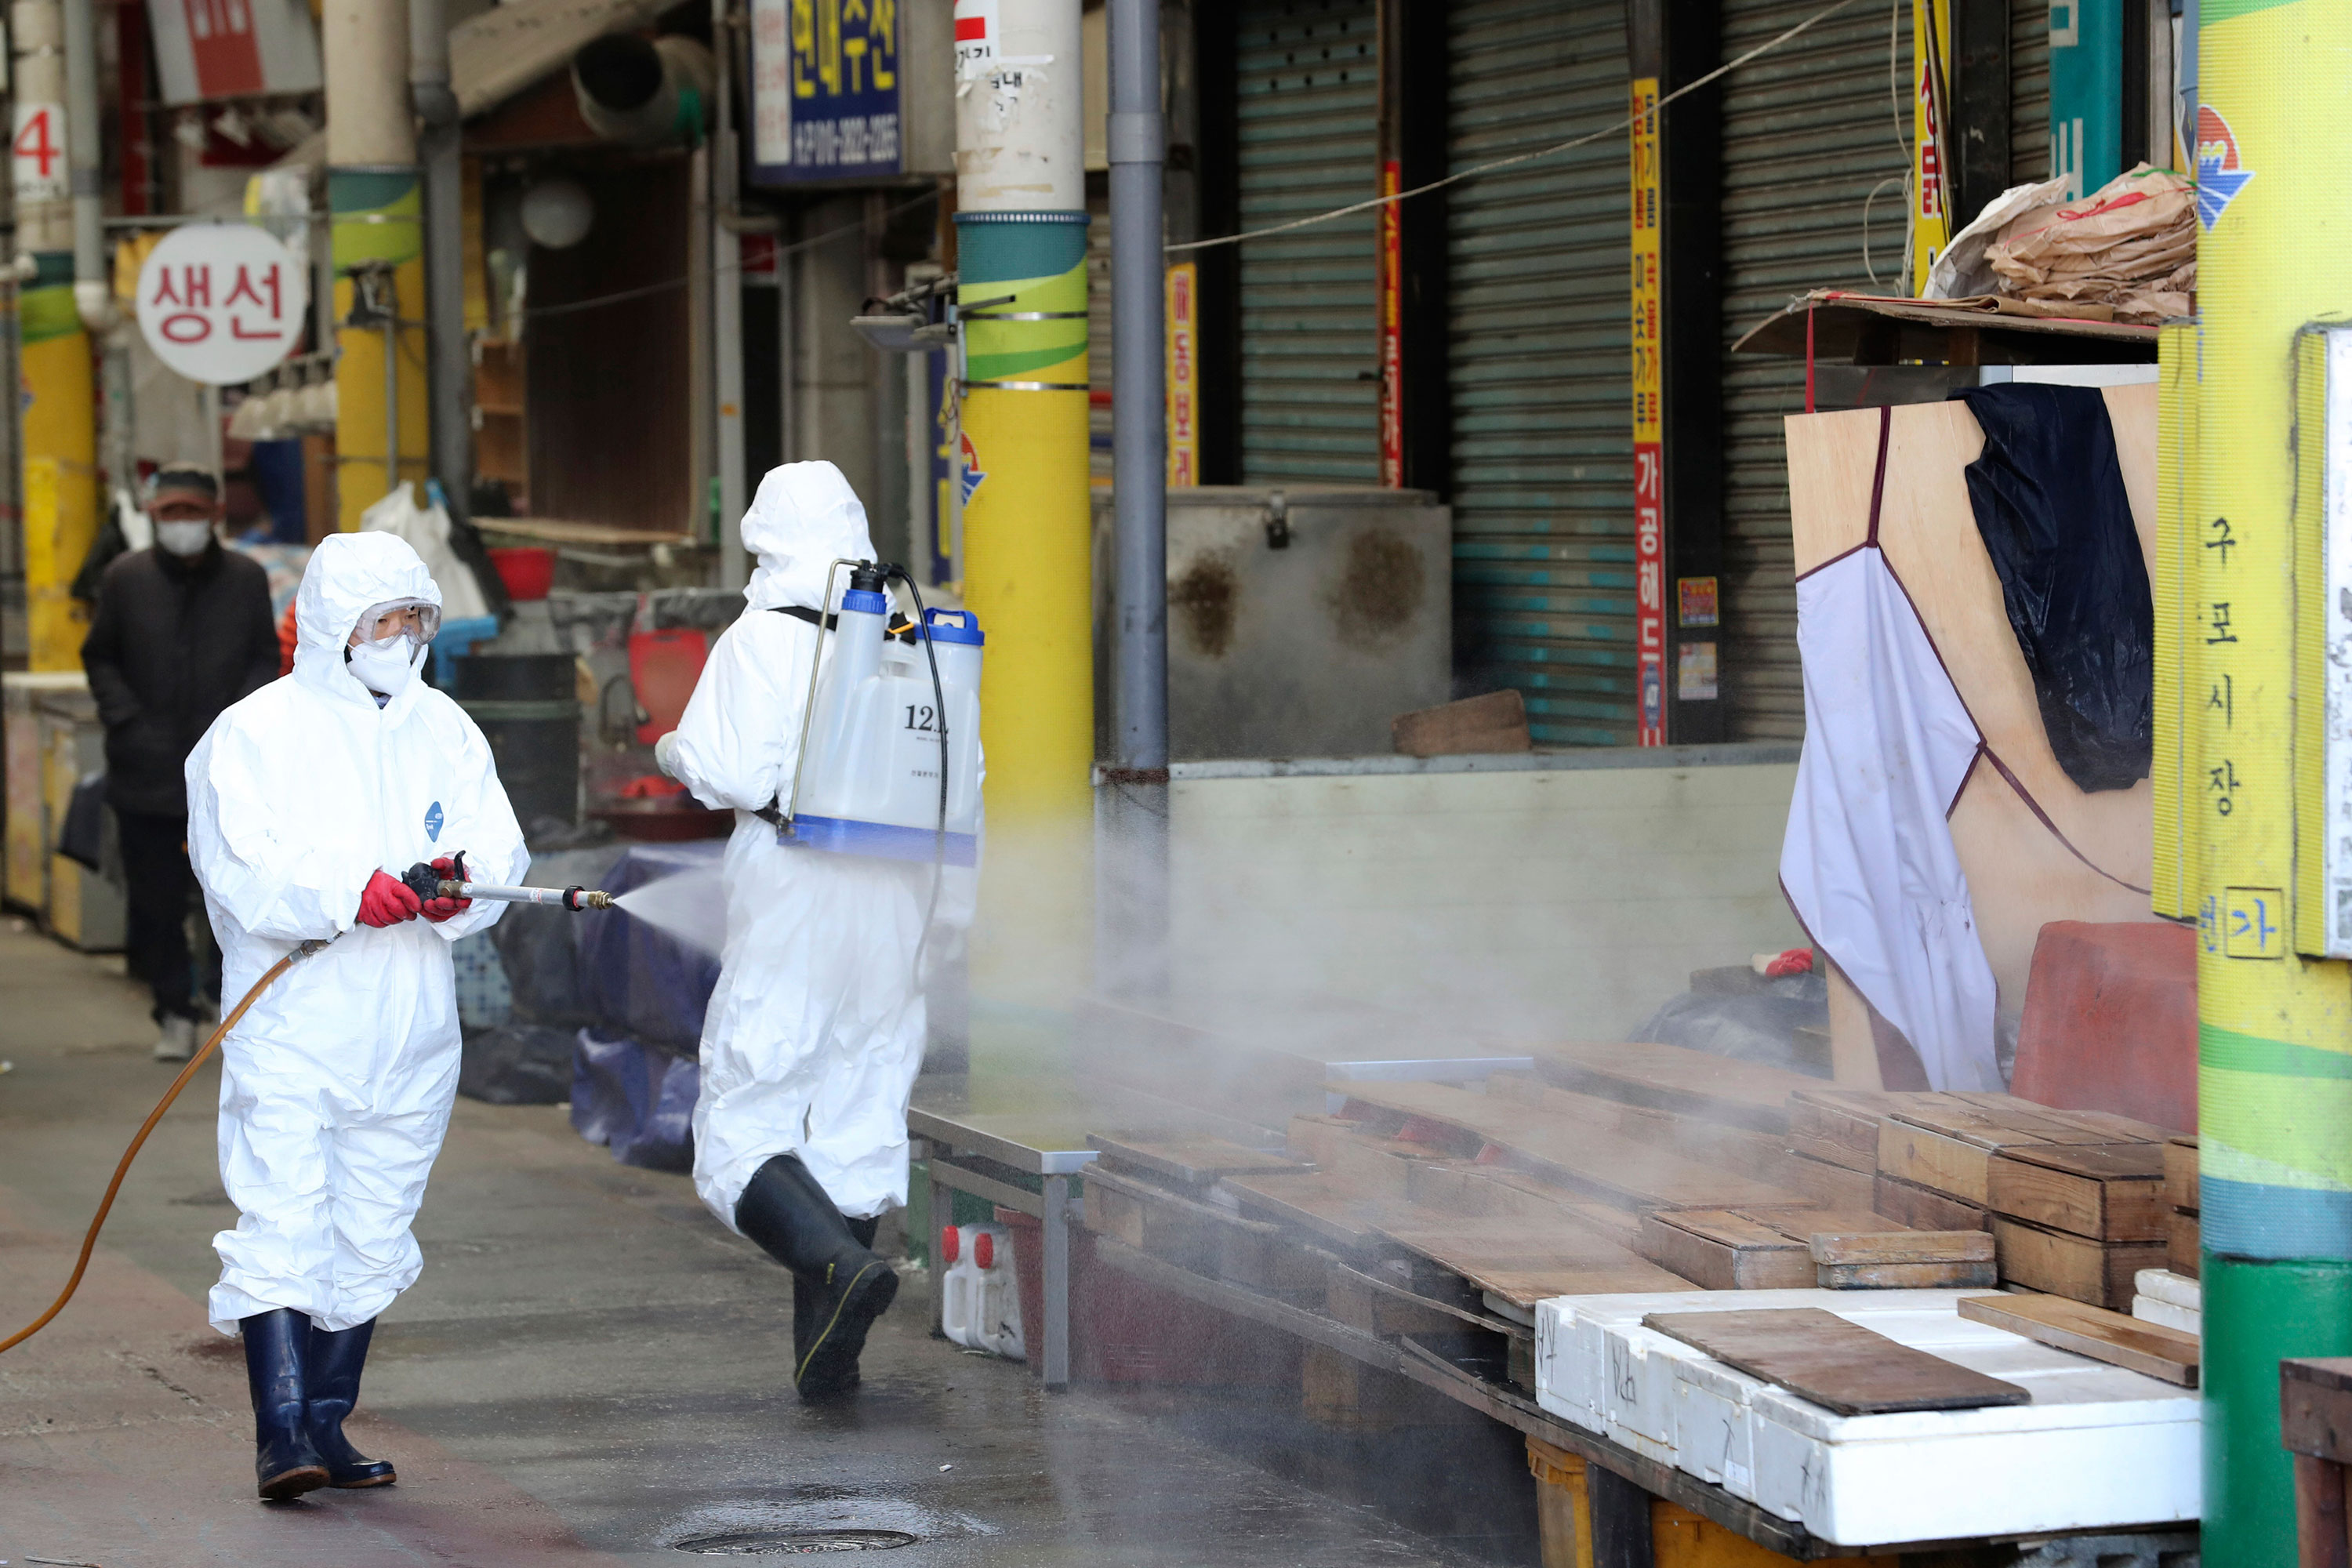 Workers spray disinfectant at a market in Busan, South Korea on Sunday.